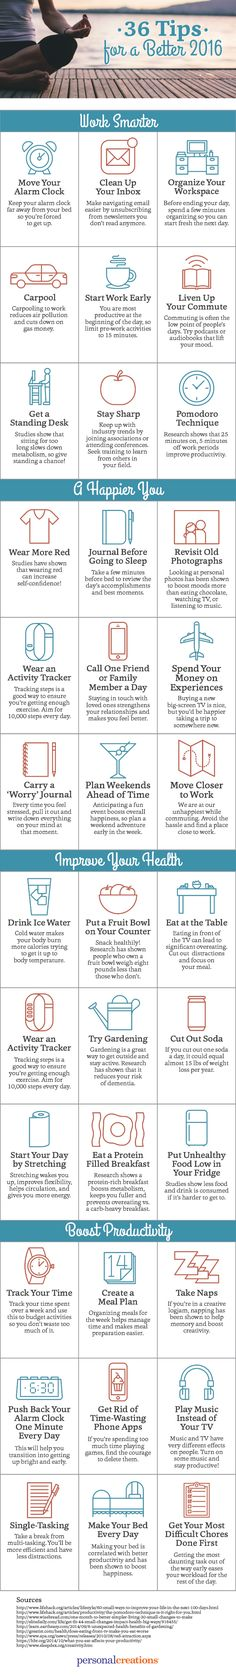 Tips for all around self-improvement - efficiency, happiness, health, and productivity.